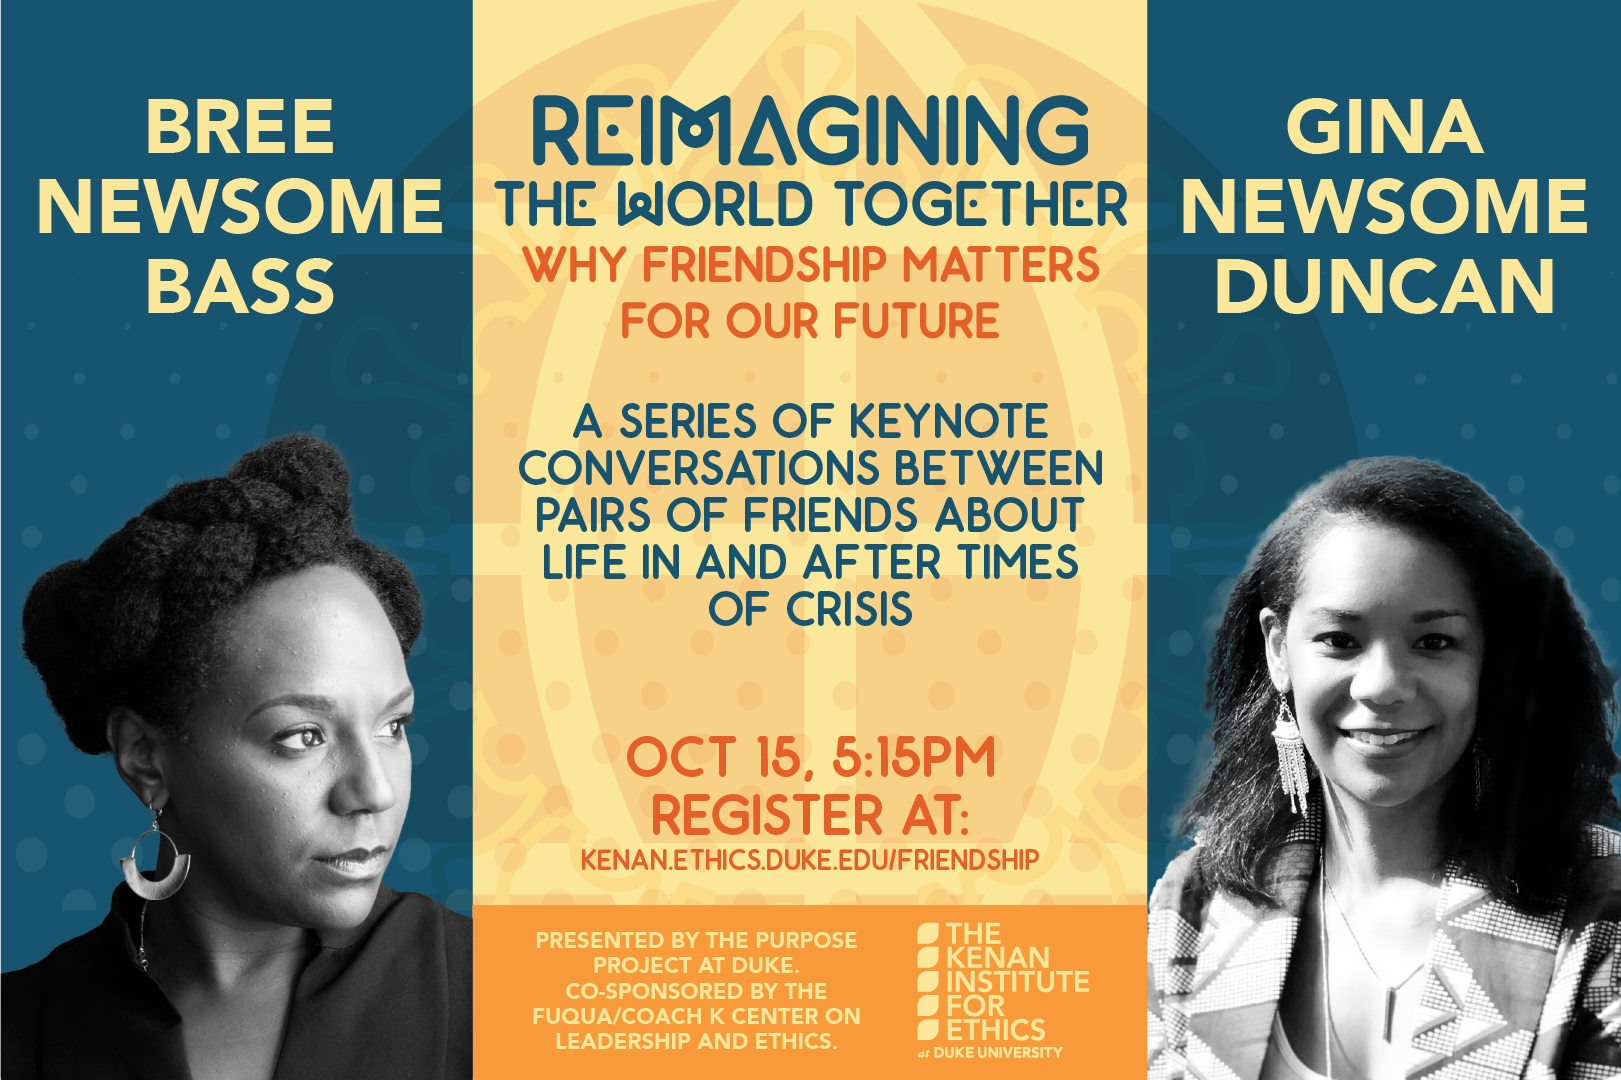 A Conversation with Bree Newsome and Gina Newsome Duncan